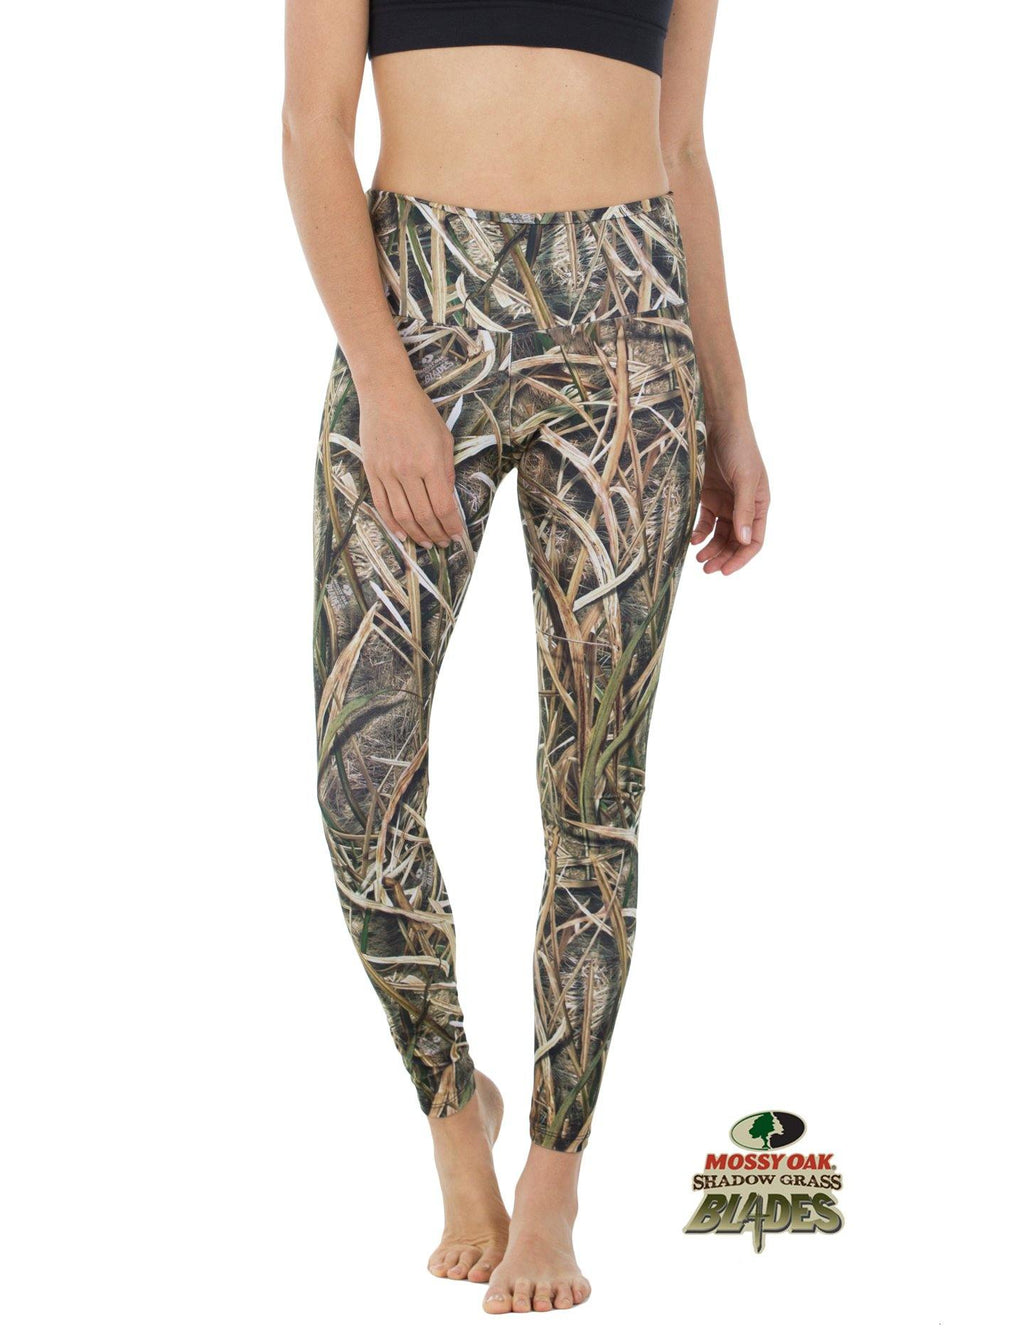 Apsara Leggings High Waist Full Length, Mossy Oak Shadow Grass Blades